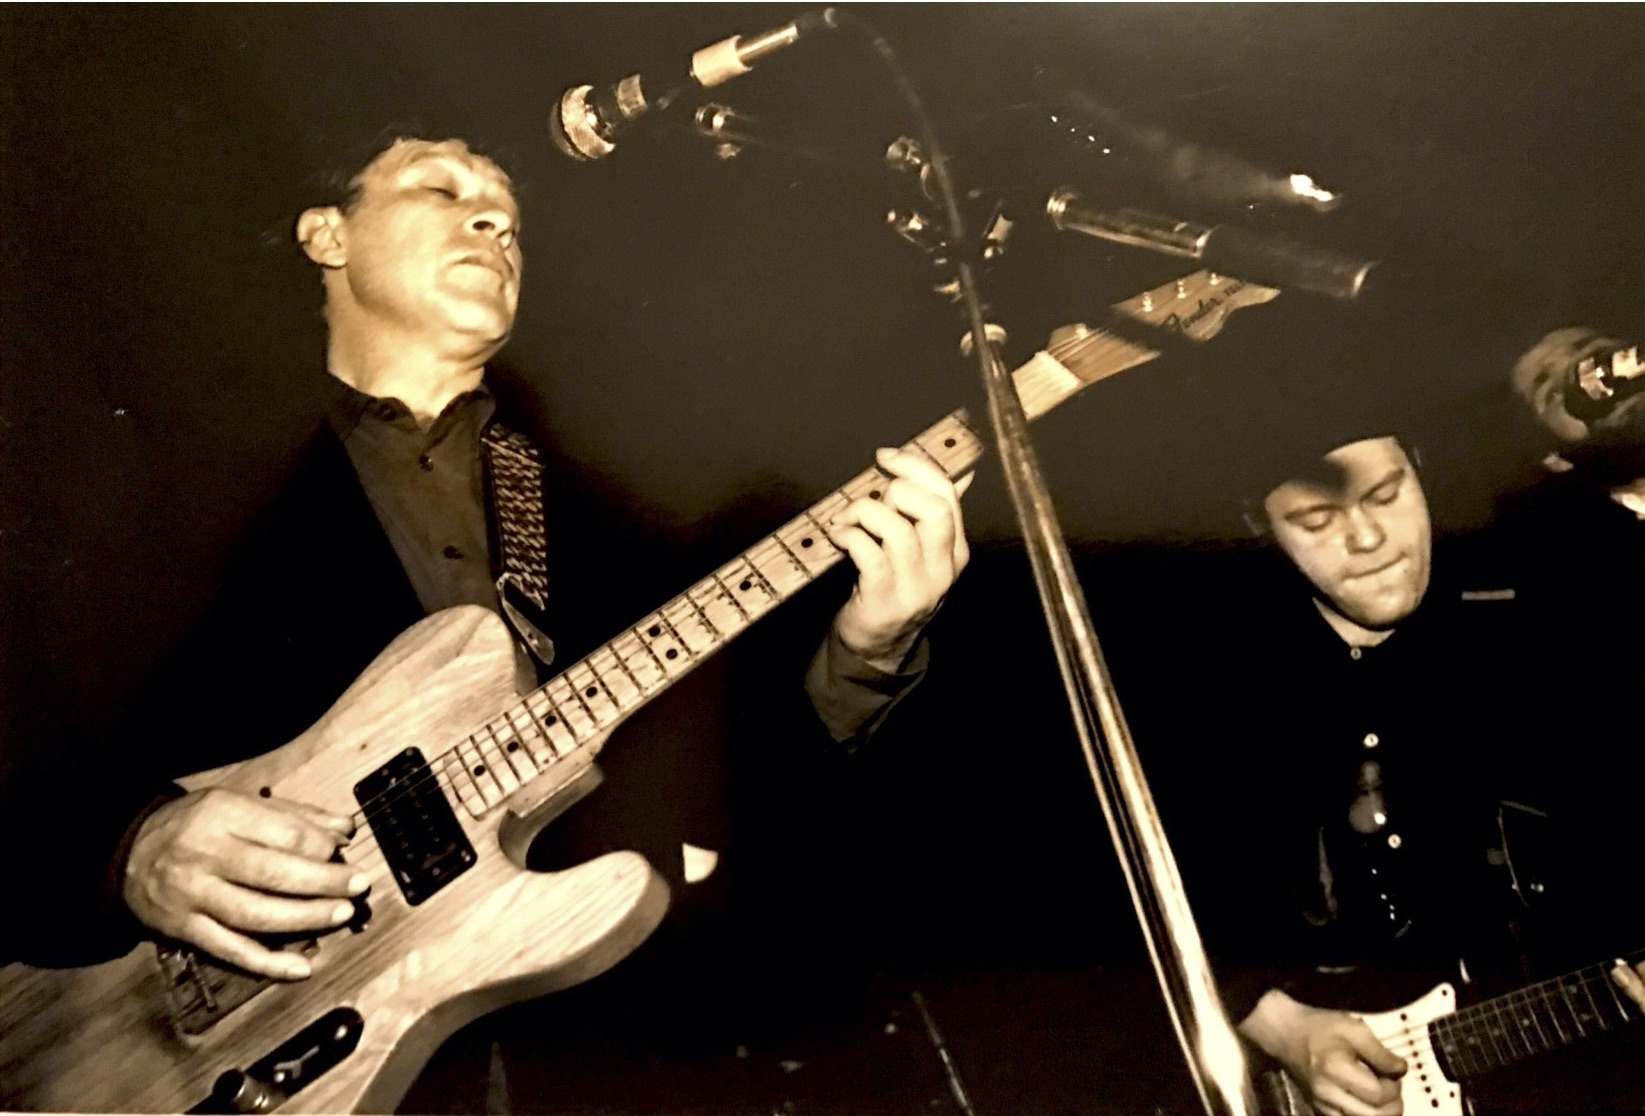 Colin Linden (R) with Robbie Robertson (L) performing at the Legendary Horseshoe Tavern in approximately 1989